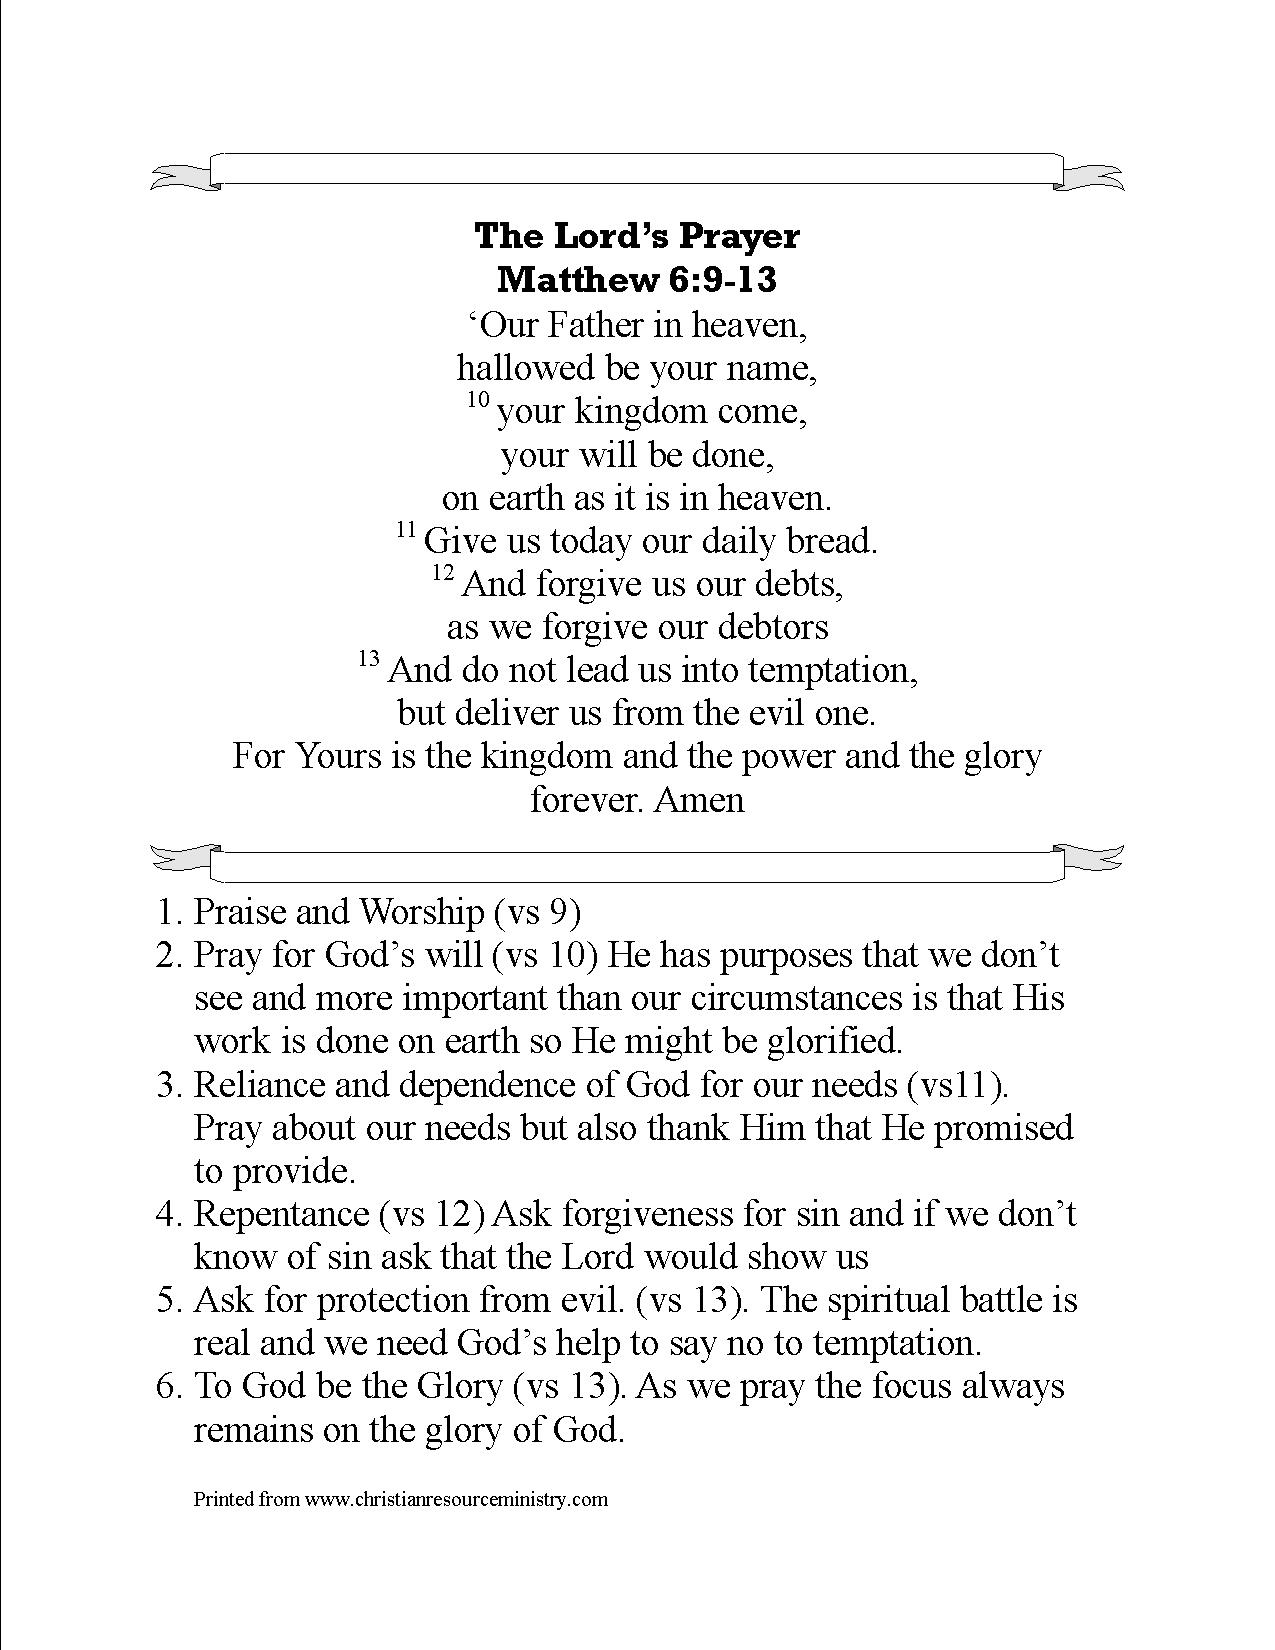 More Printables On The Lord S Prayer